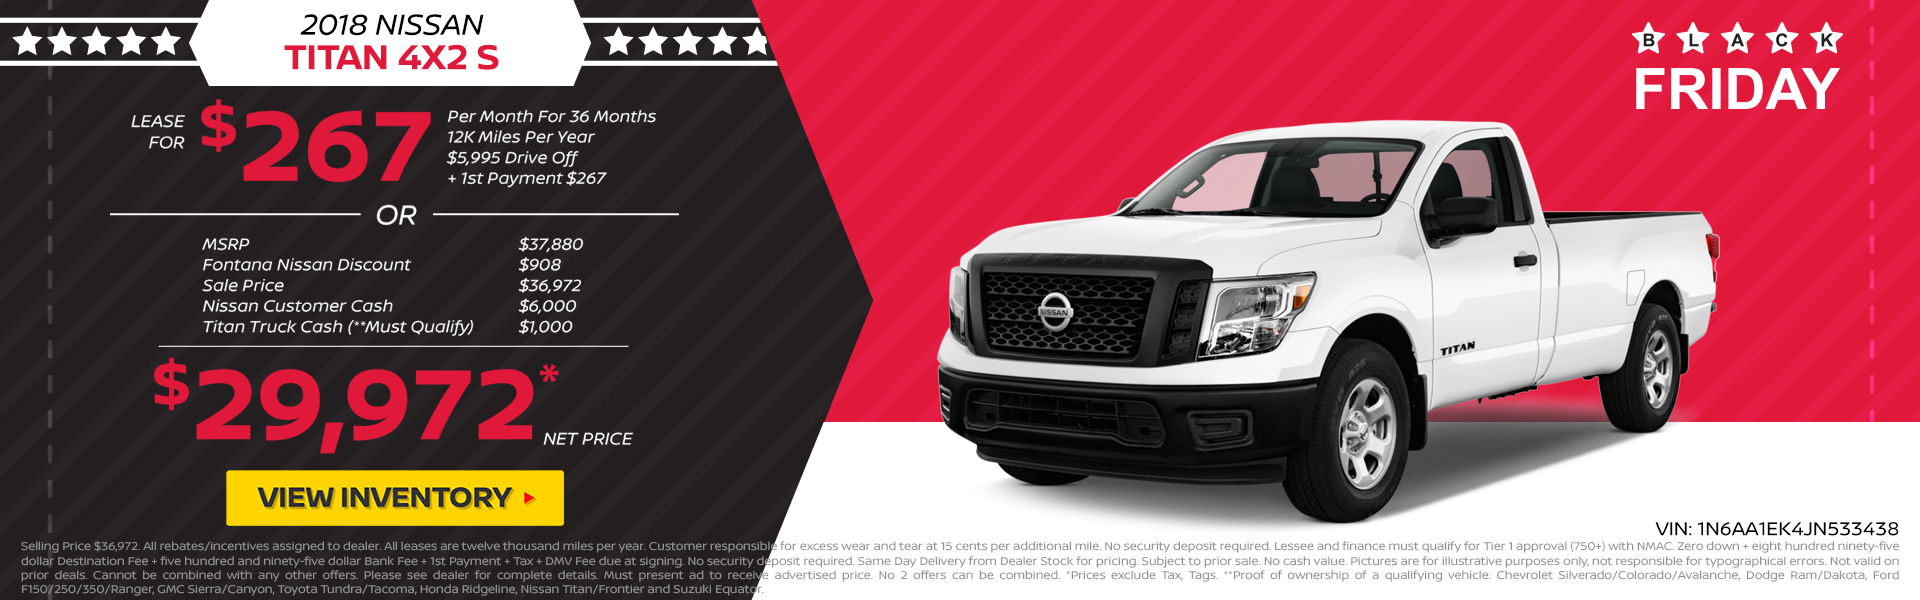 Nissan Titan $267 Lease or $30,972 Purchase